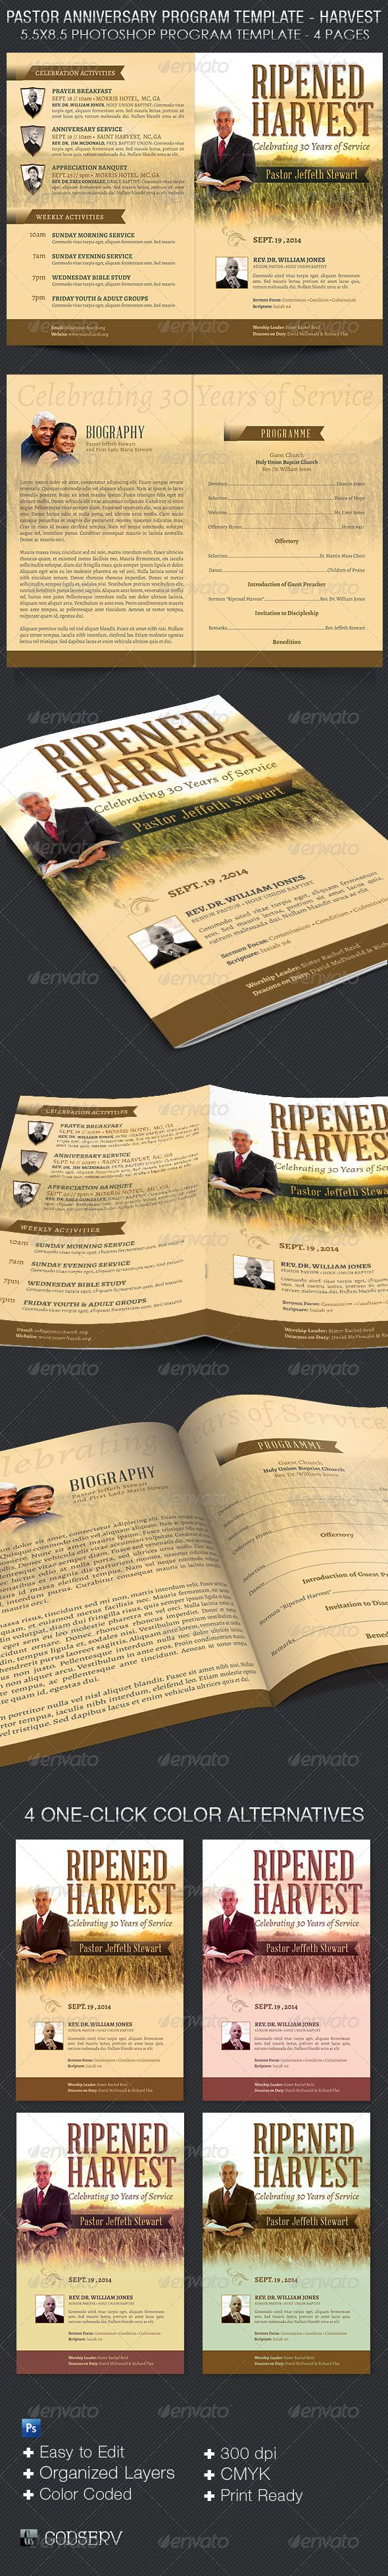 17 best images about church print samples program event flyers